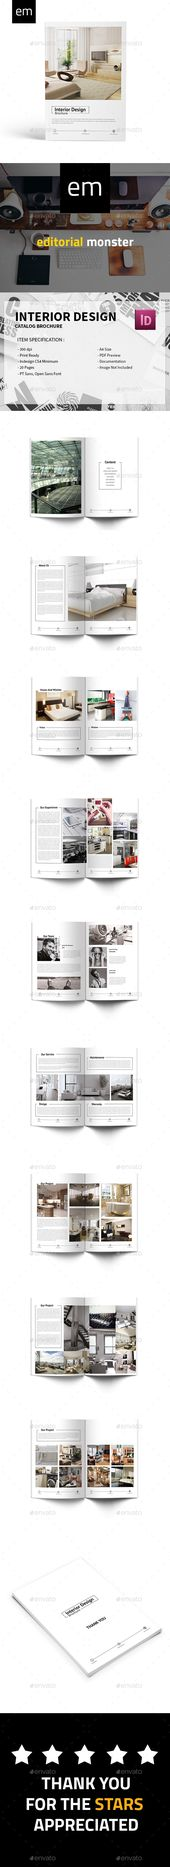 Interior Design Brochure Brochures, Brochure template and - interior design brochure template